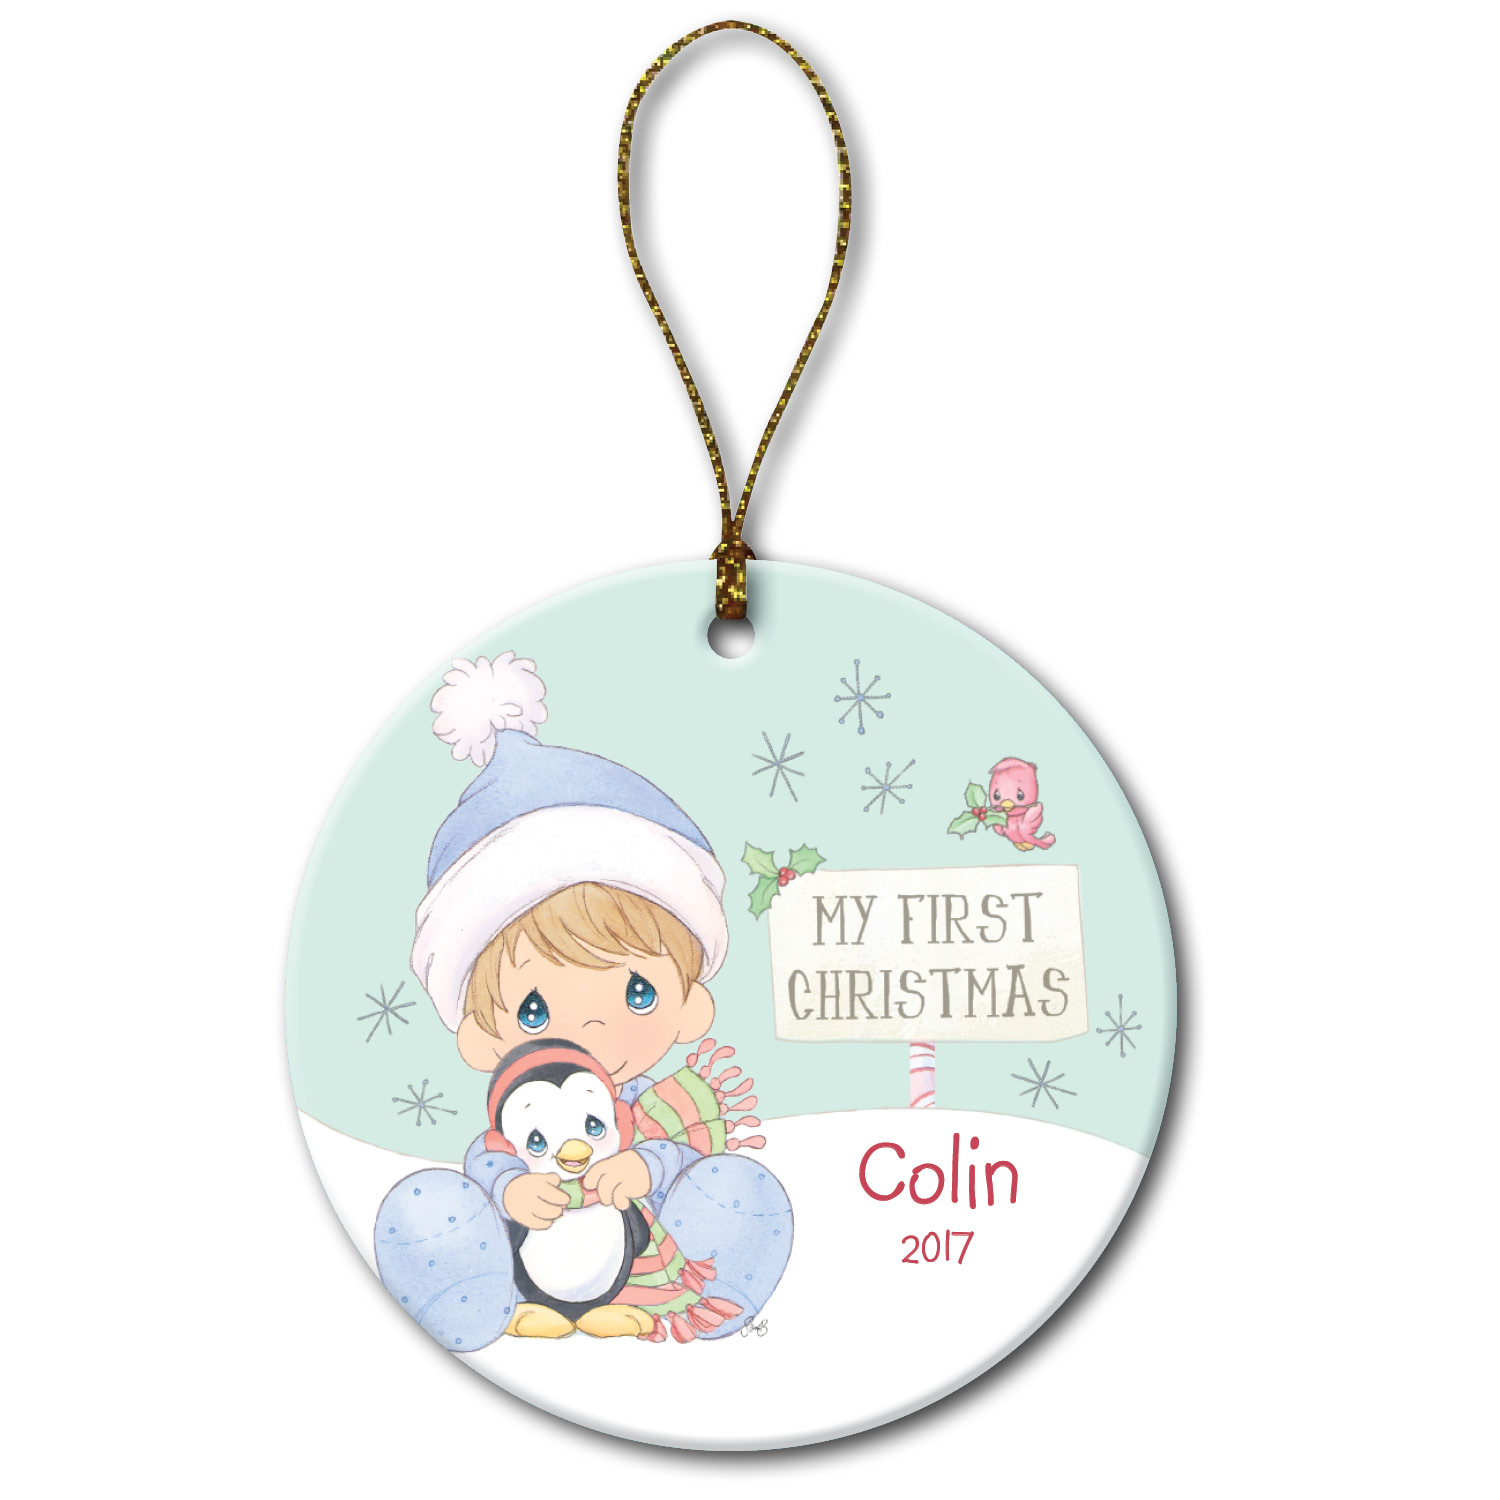 Personalized Precious Moments Christmas Ornament - His First Christmas